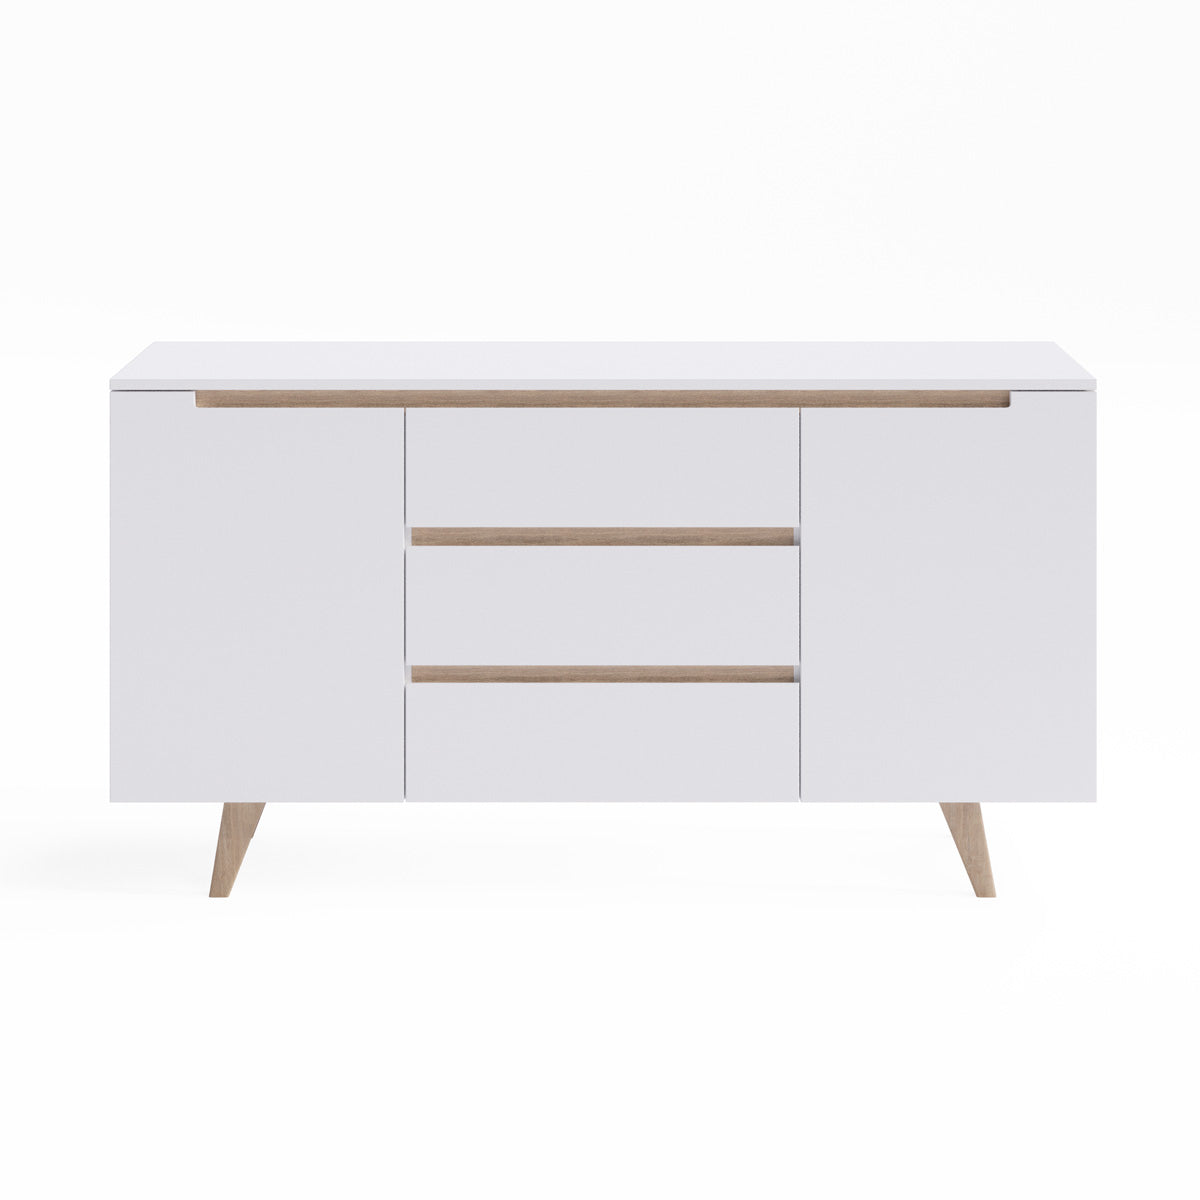 Sideboard Buffet Unit with Solid Oak Legs (Olsen Collection)